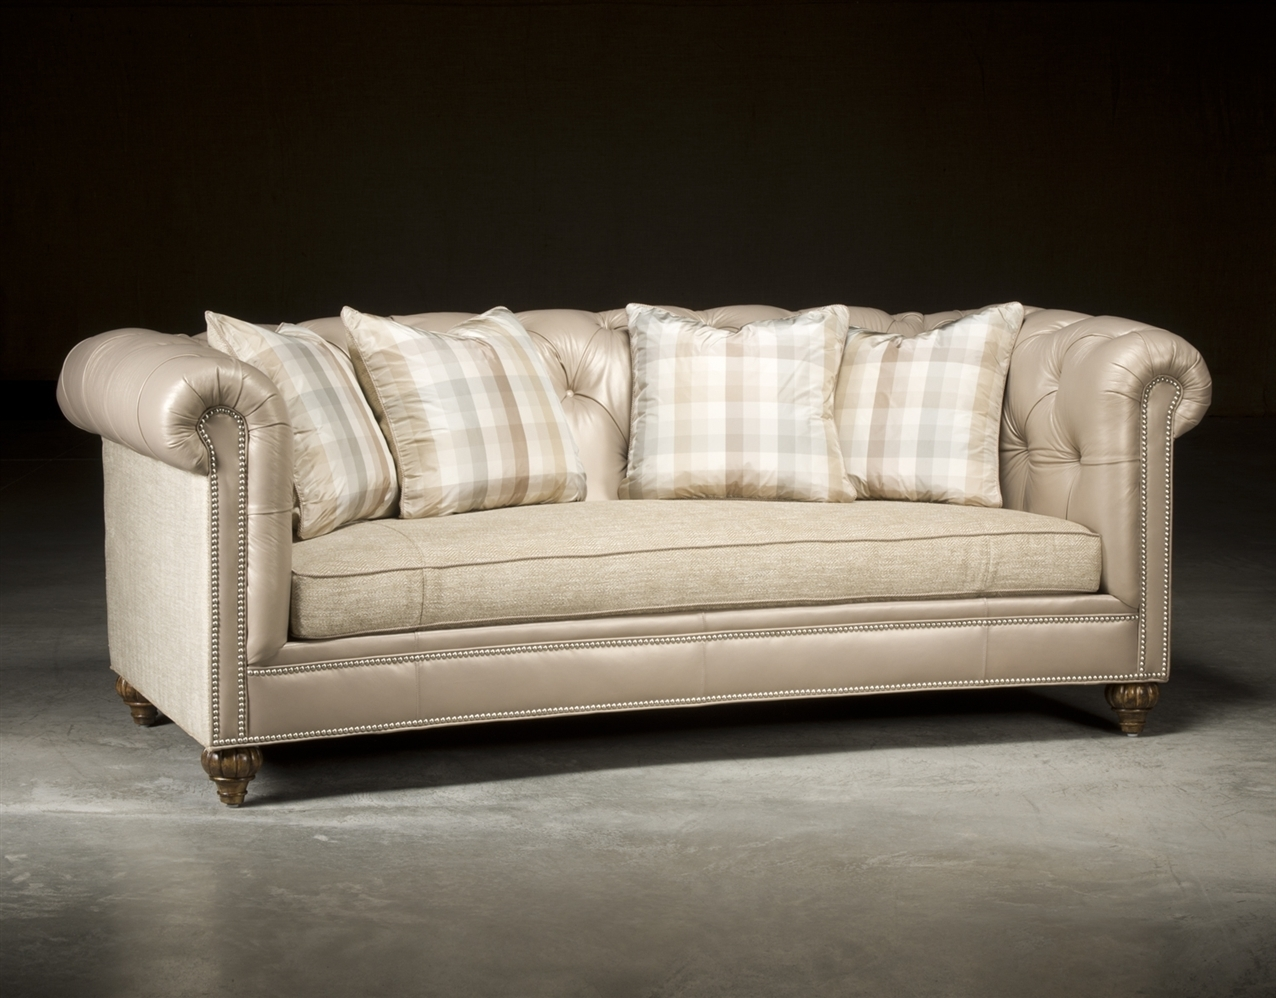 High End Designer Sofas | Sofa 72 Qty Description Chesterfield With Regard To High End Sofas (View 7 of 10)